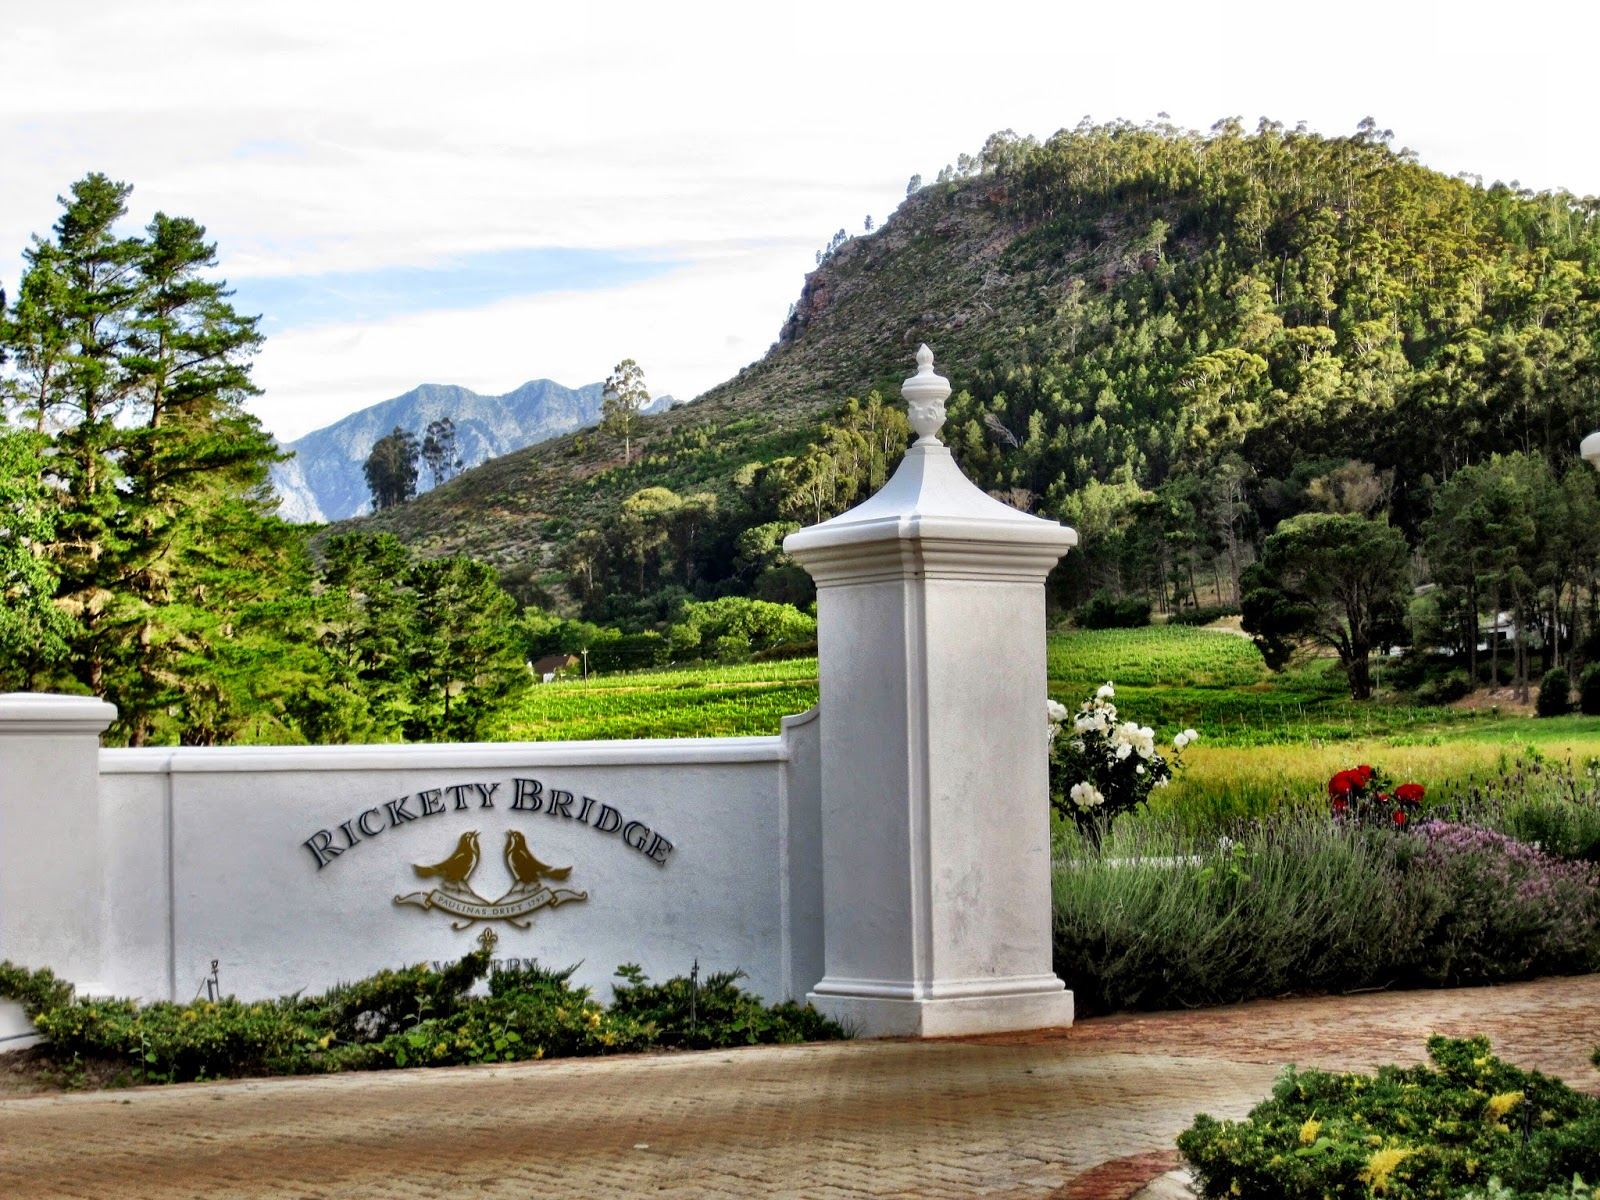 Rickety Bridge vineyard entrance, Franschhoek